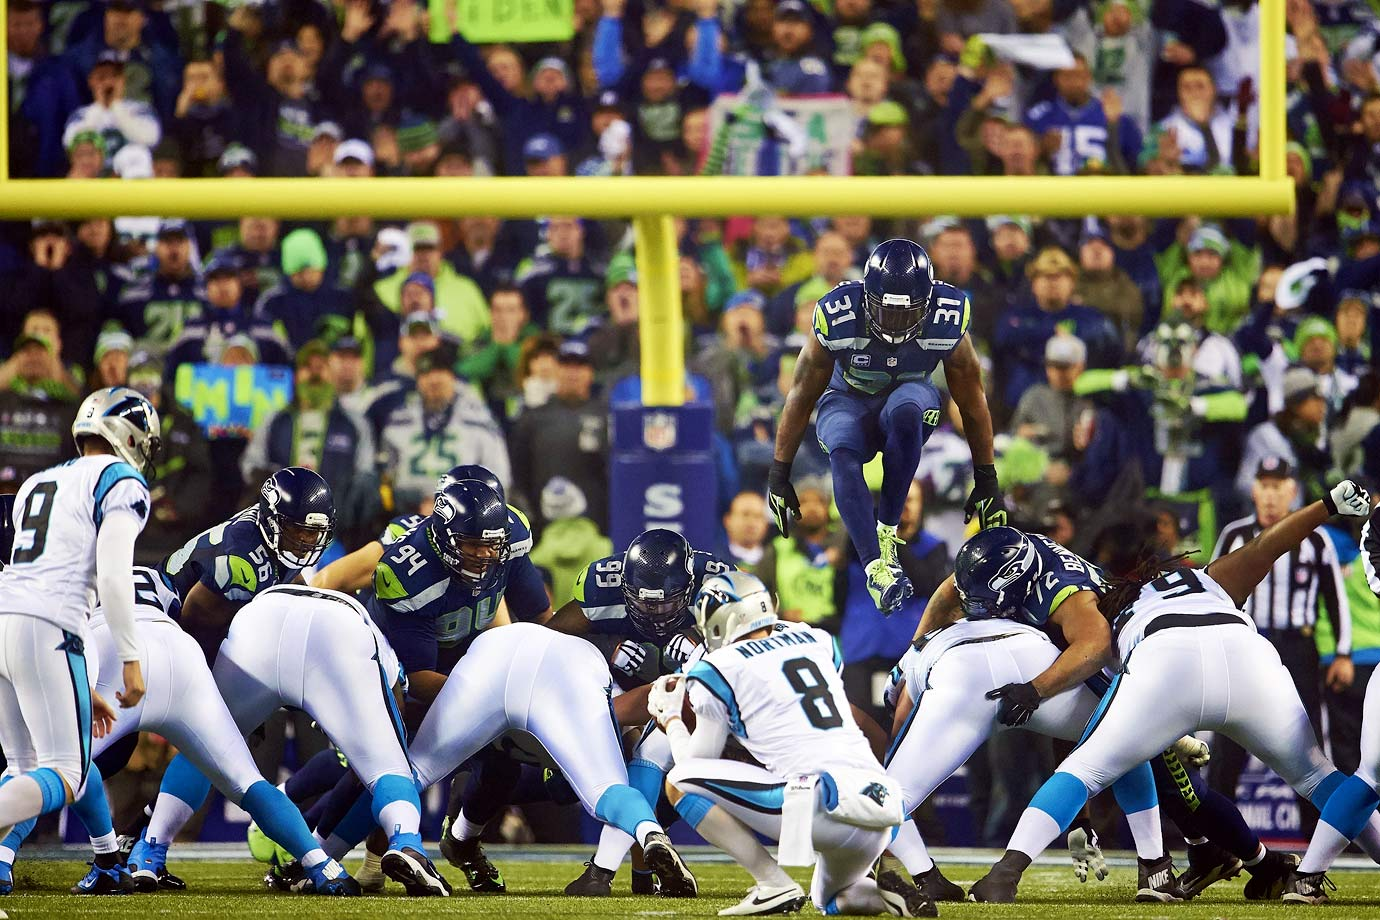 The Seahawks postseason started with a 31-17 win over Carolina. Russell Wilson threw for three touchdowns, but Kam Chancellor was the star, jumping over linemen on field goal attempts and returning an interception 90 yards for a touchdown.